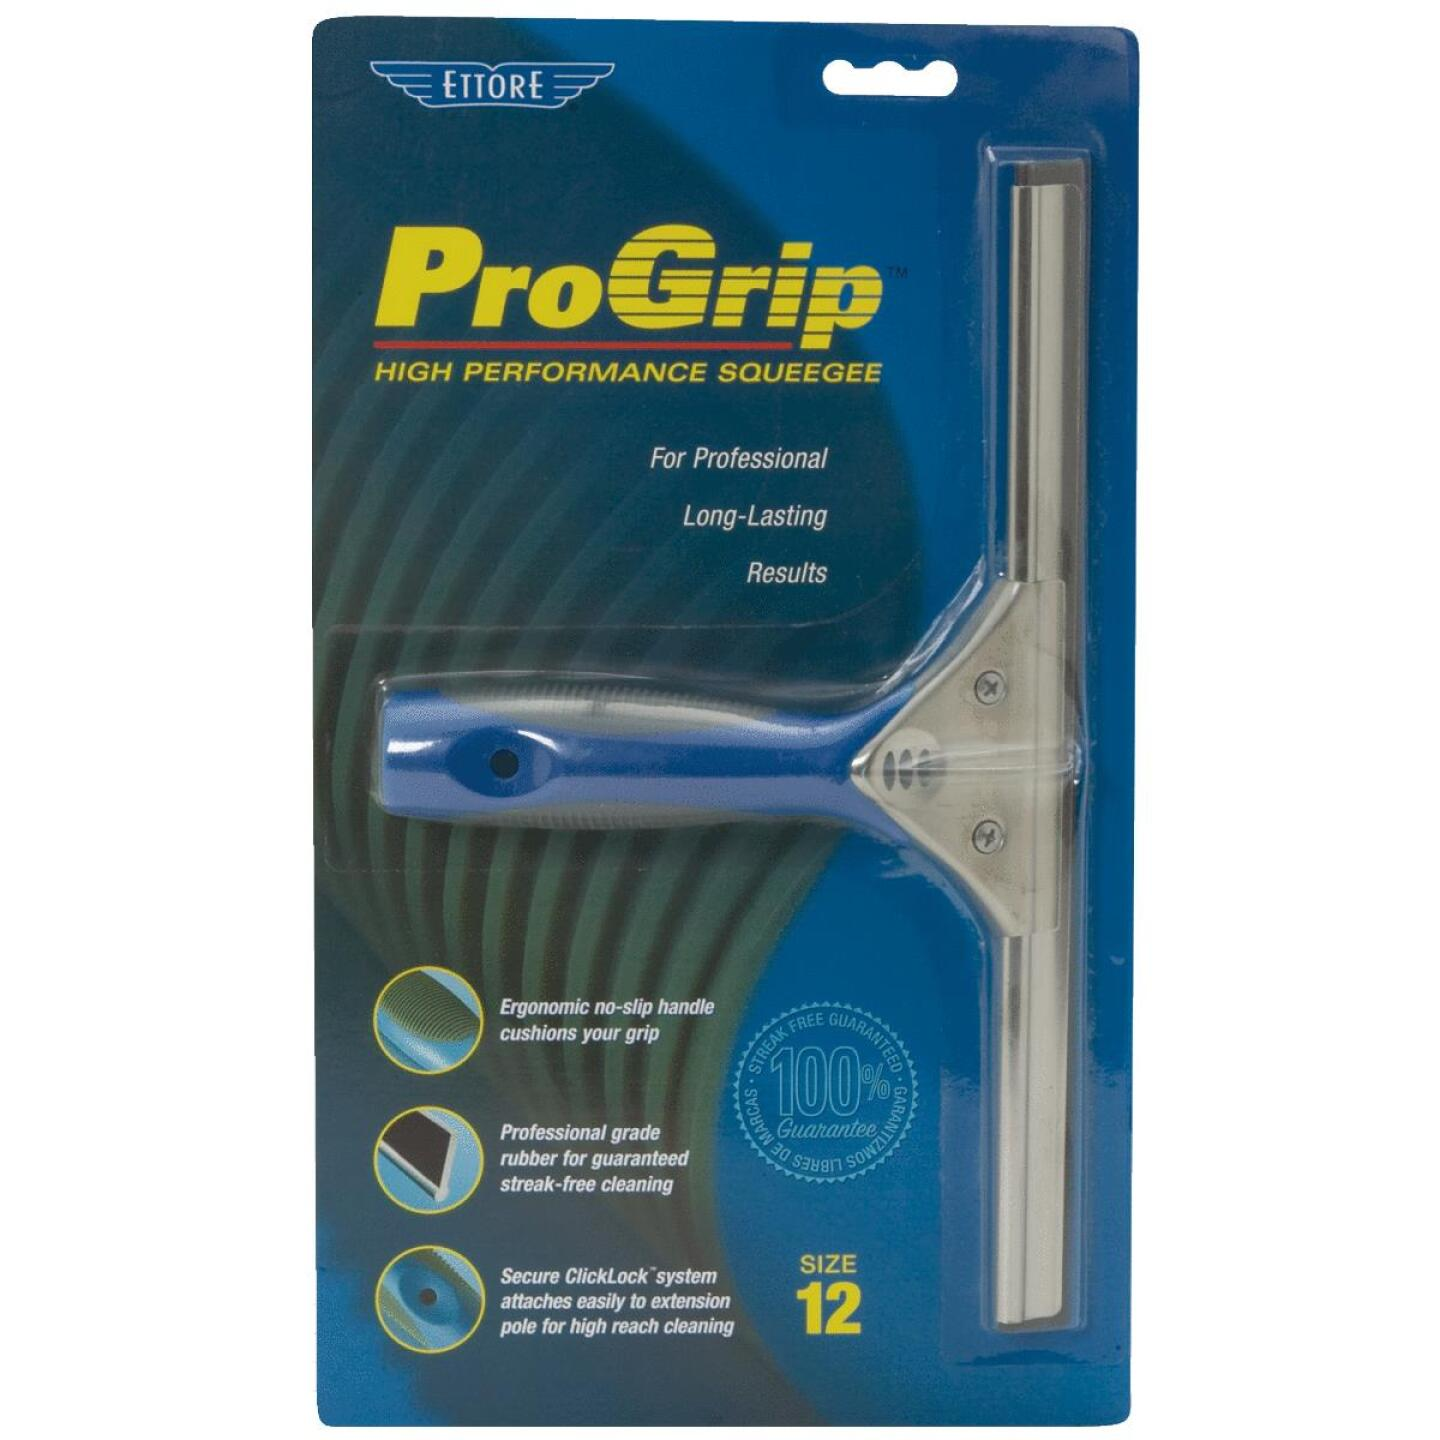 Ettore ProGrip 12 In. Rubber Squeegee Image 2